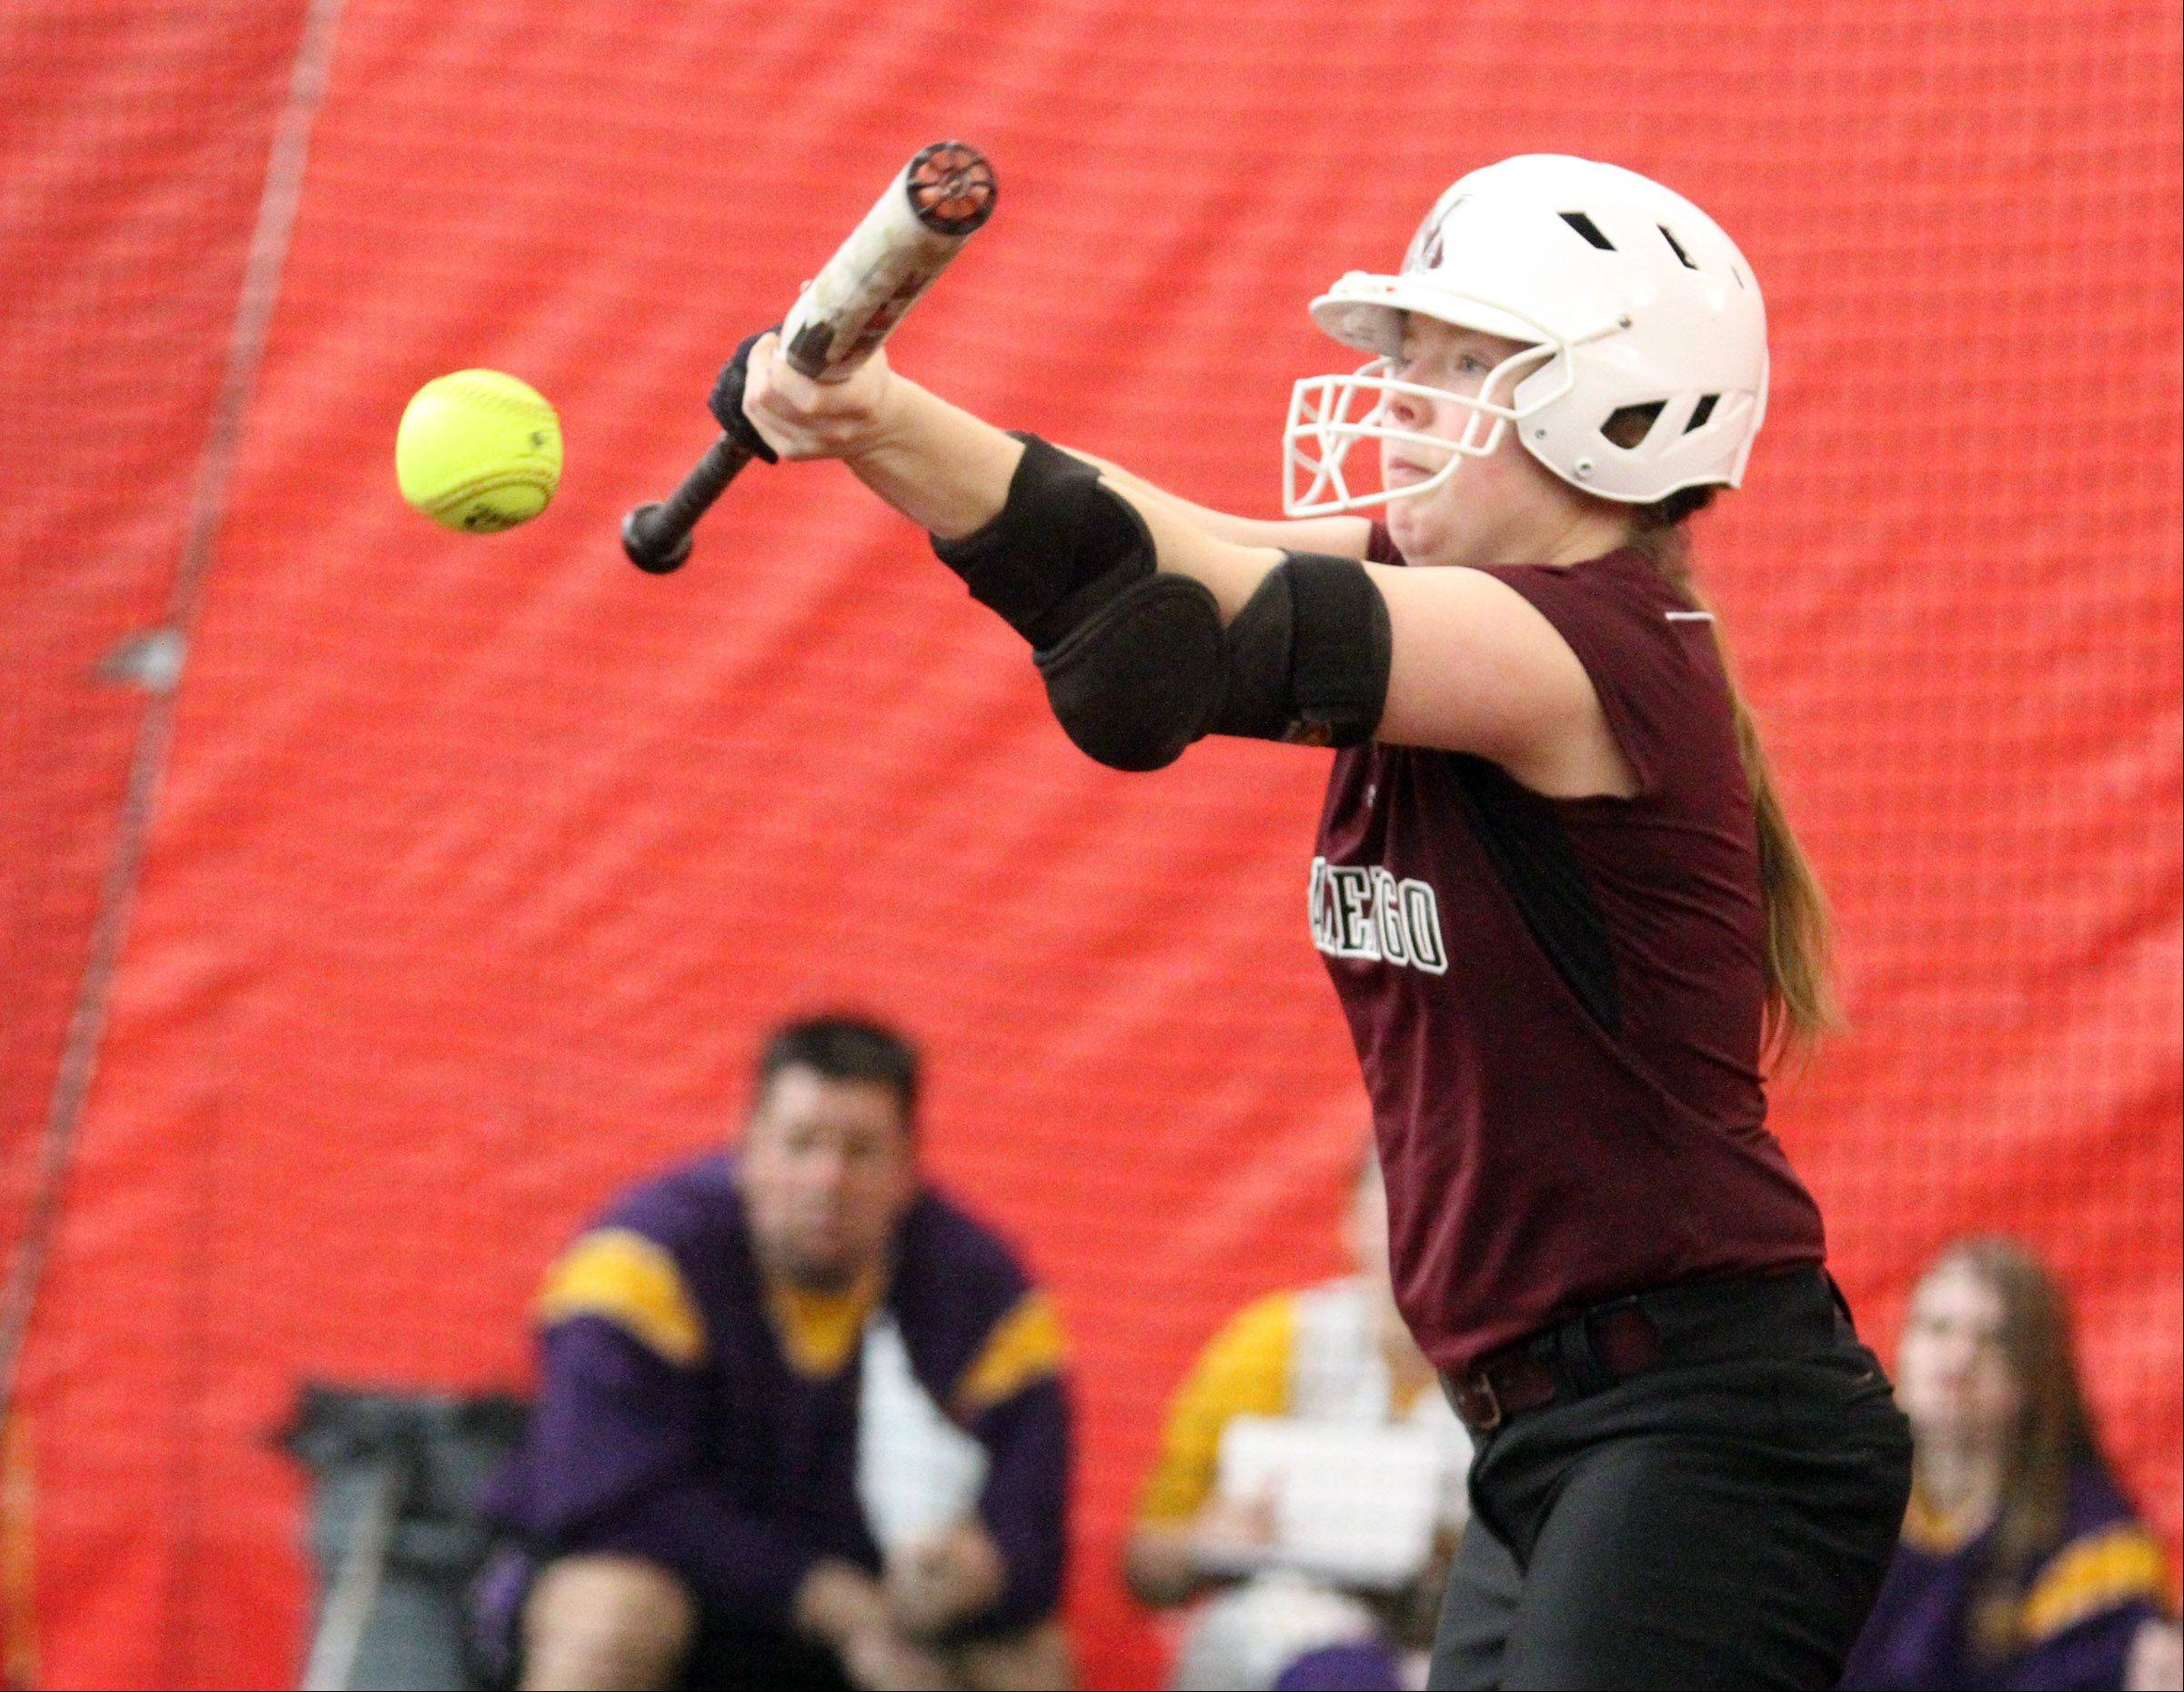 Marengo's Abby Kissack bunts the ball against Wauconda pitcher Kayla Wedl at The Dome in Rosemont on Friday.